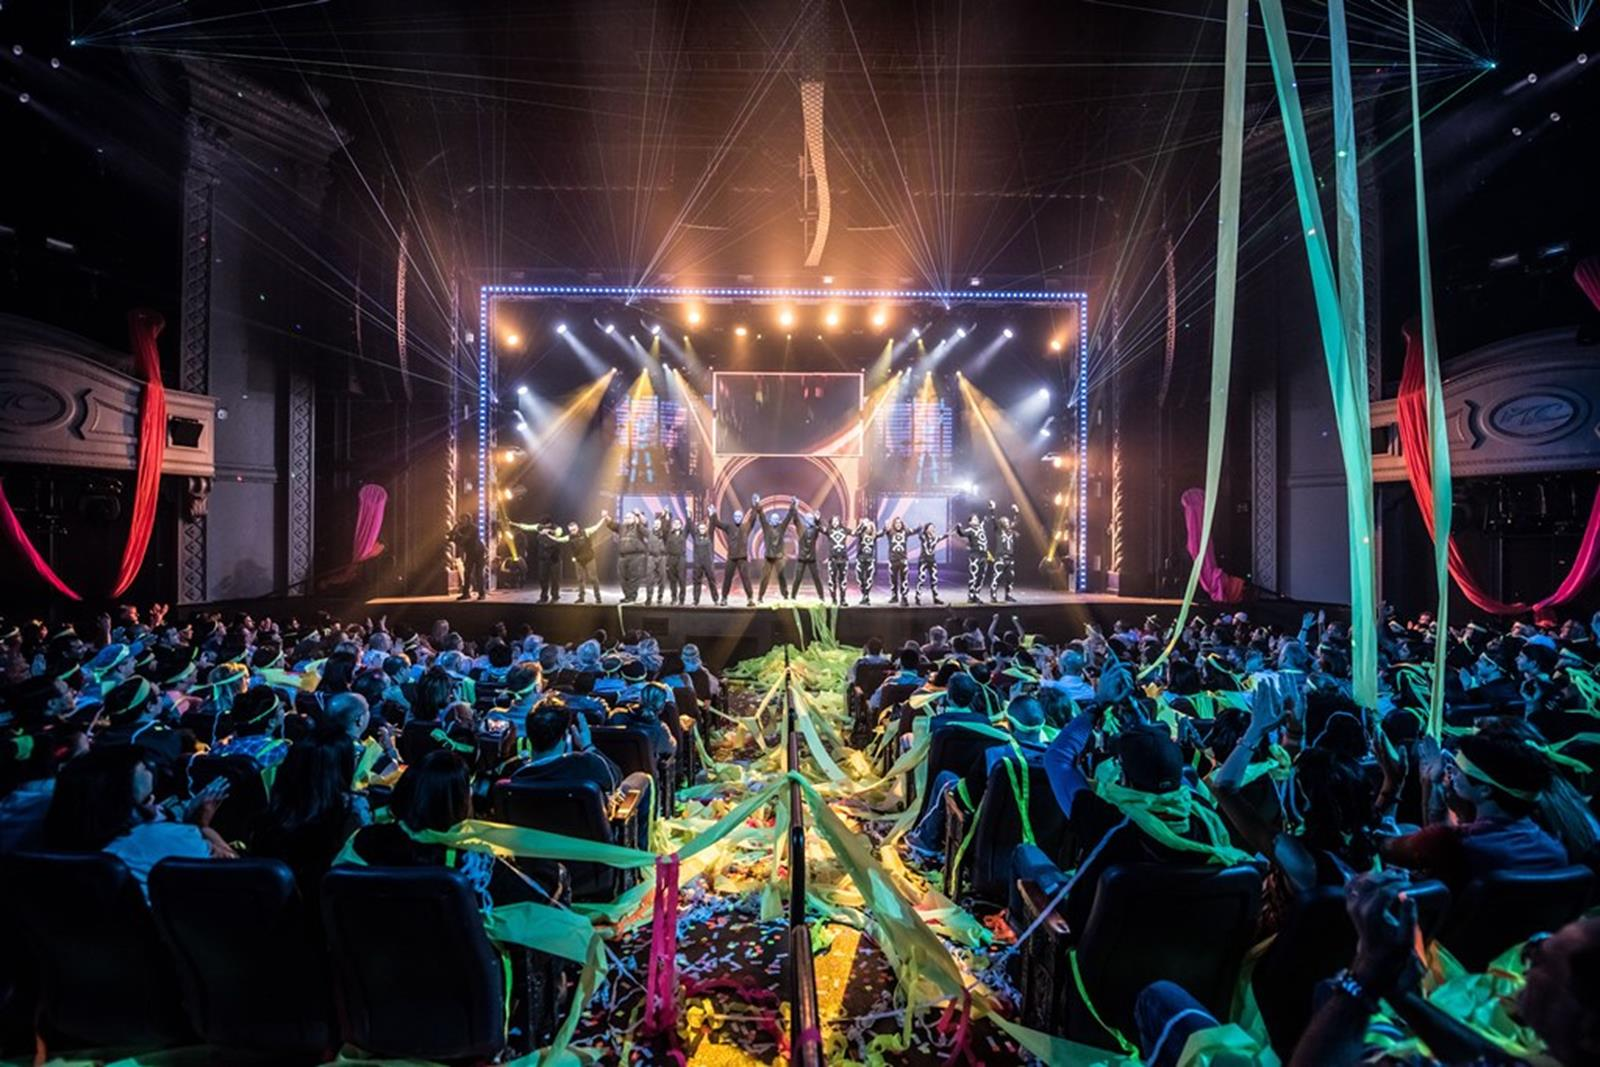 Blue Man Group Cast Bows After Electrifying Finale at Monte Carlo Resort and Casino